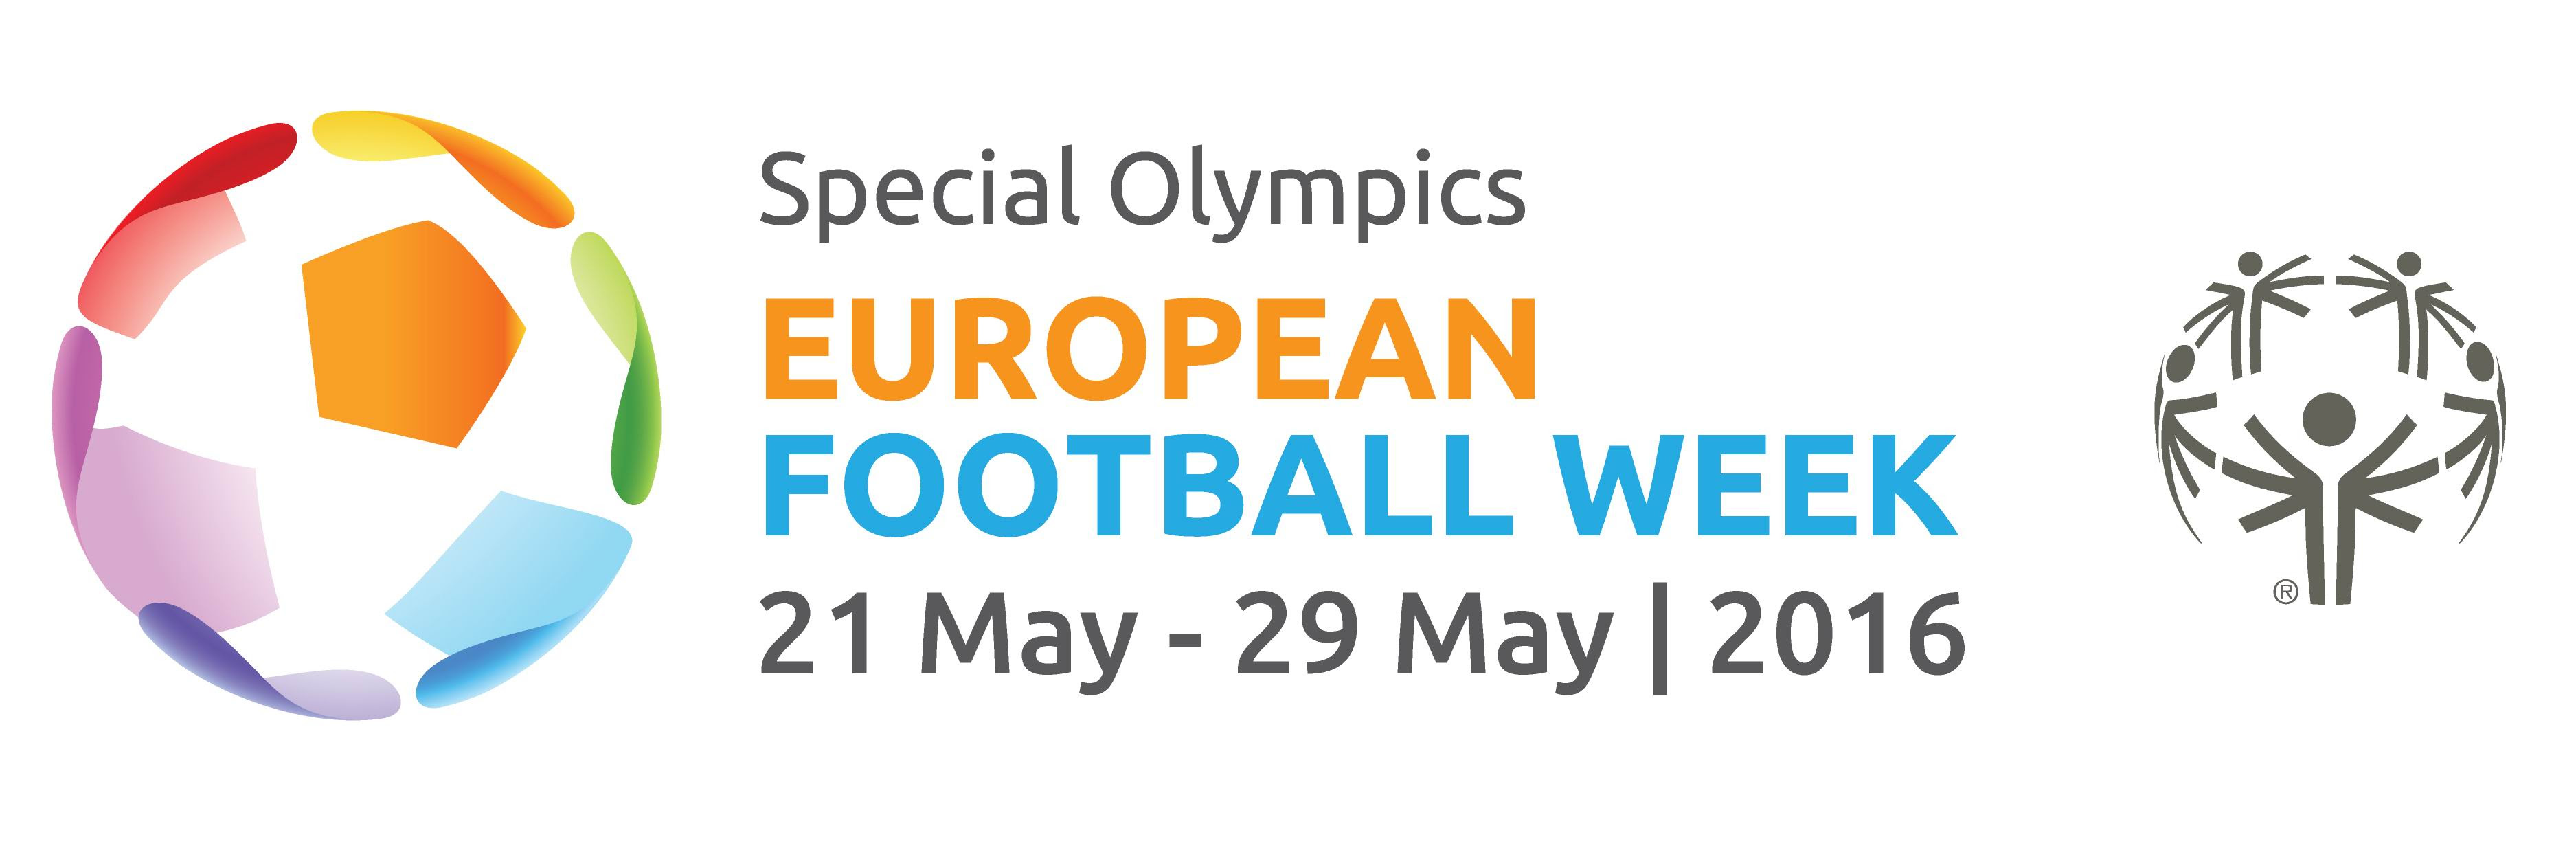 European Football Week